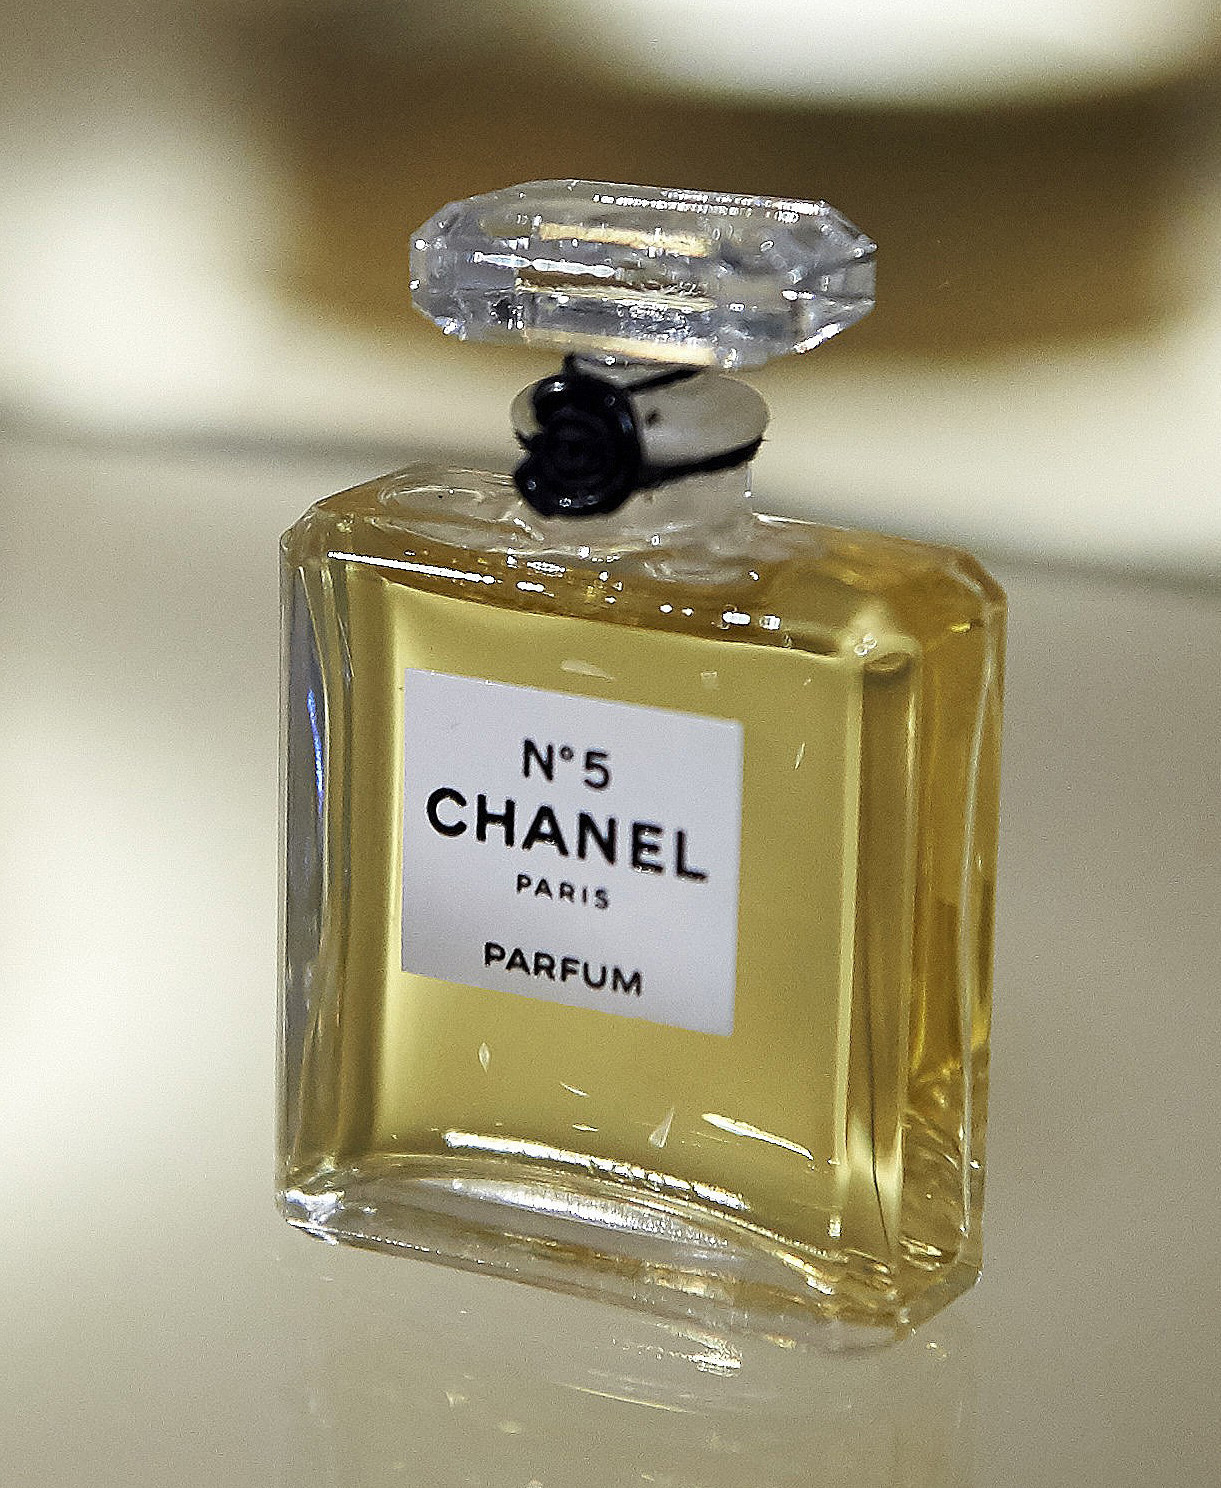 chanel no 5 perfume threatened by train crossing flower. Black Bedroom Furniture Sets. Home Design Ideas